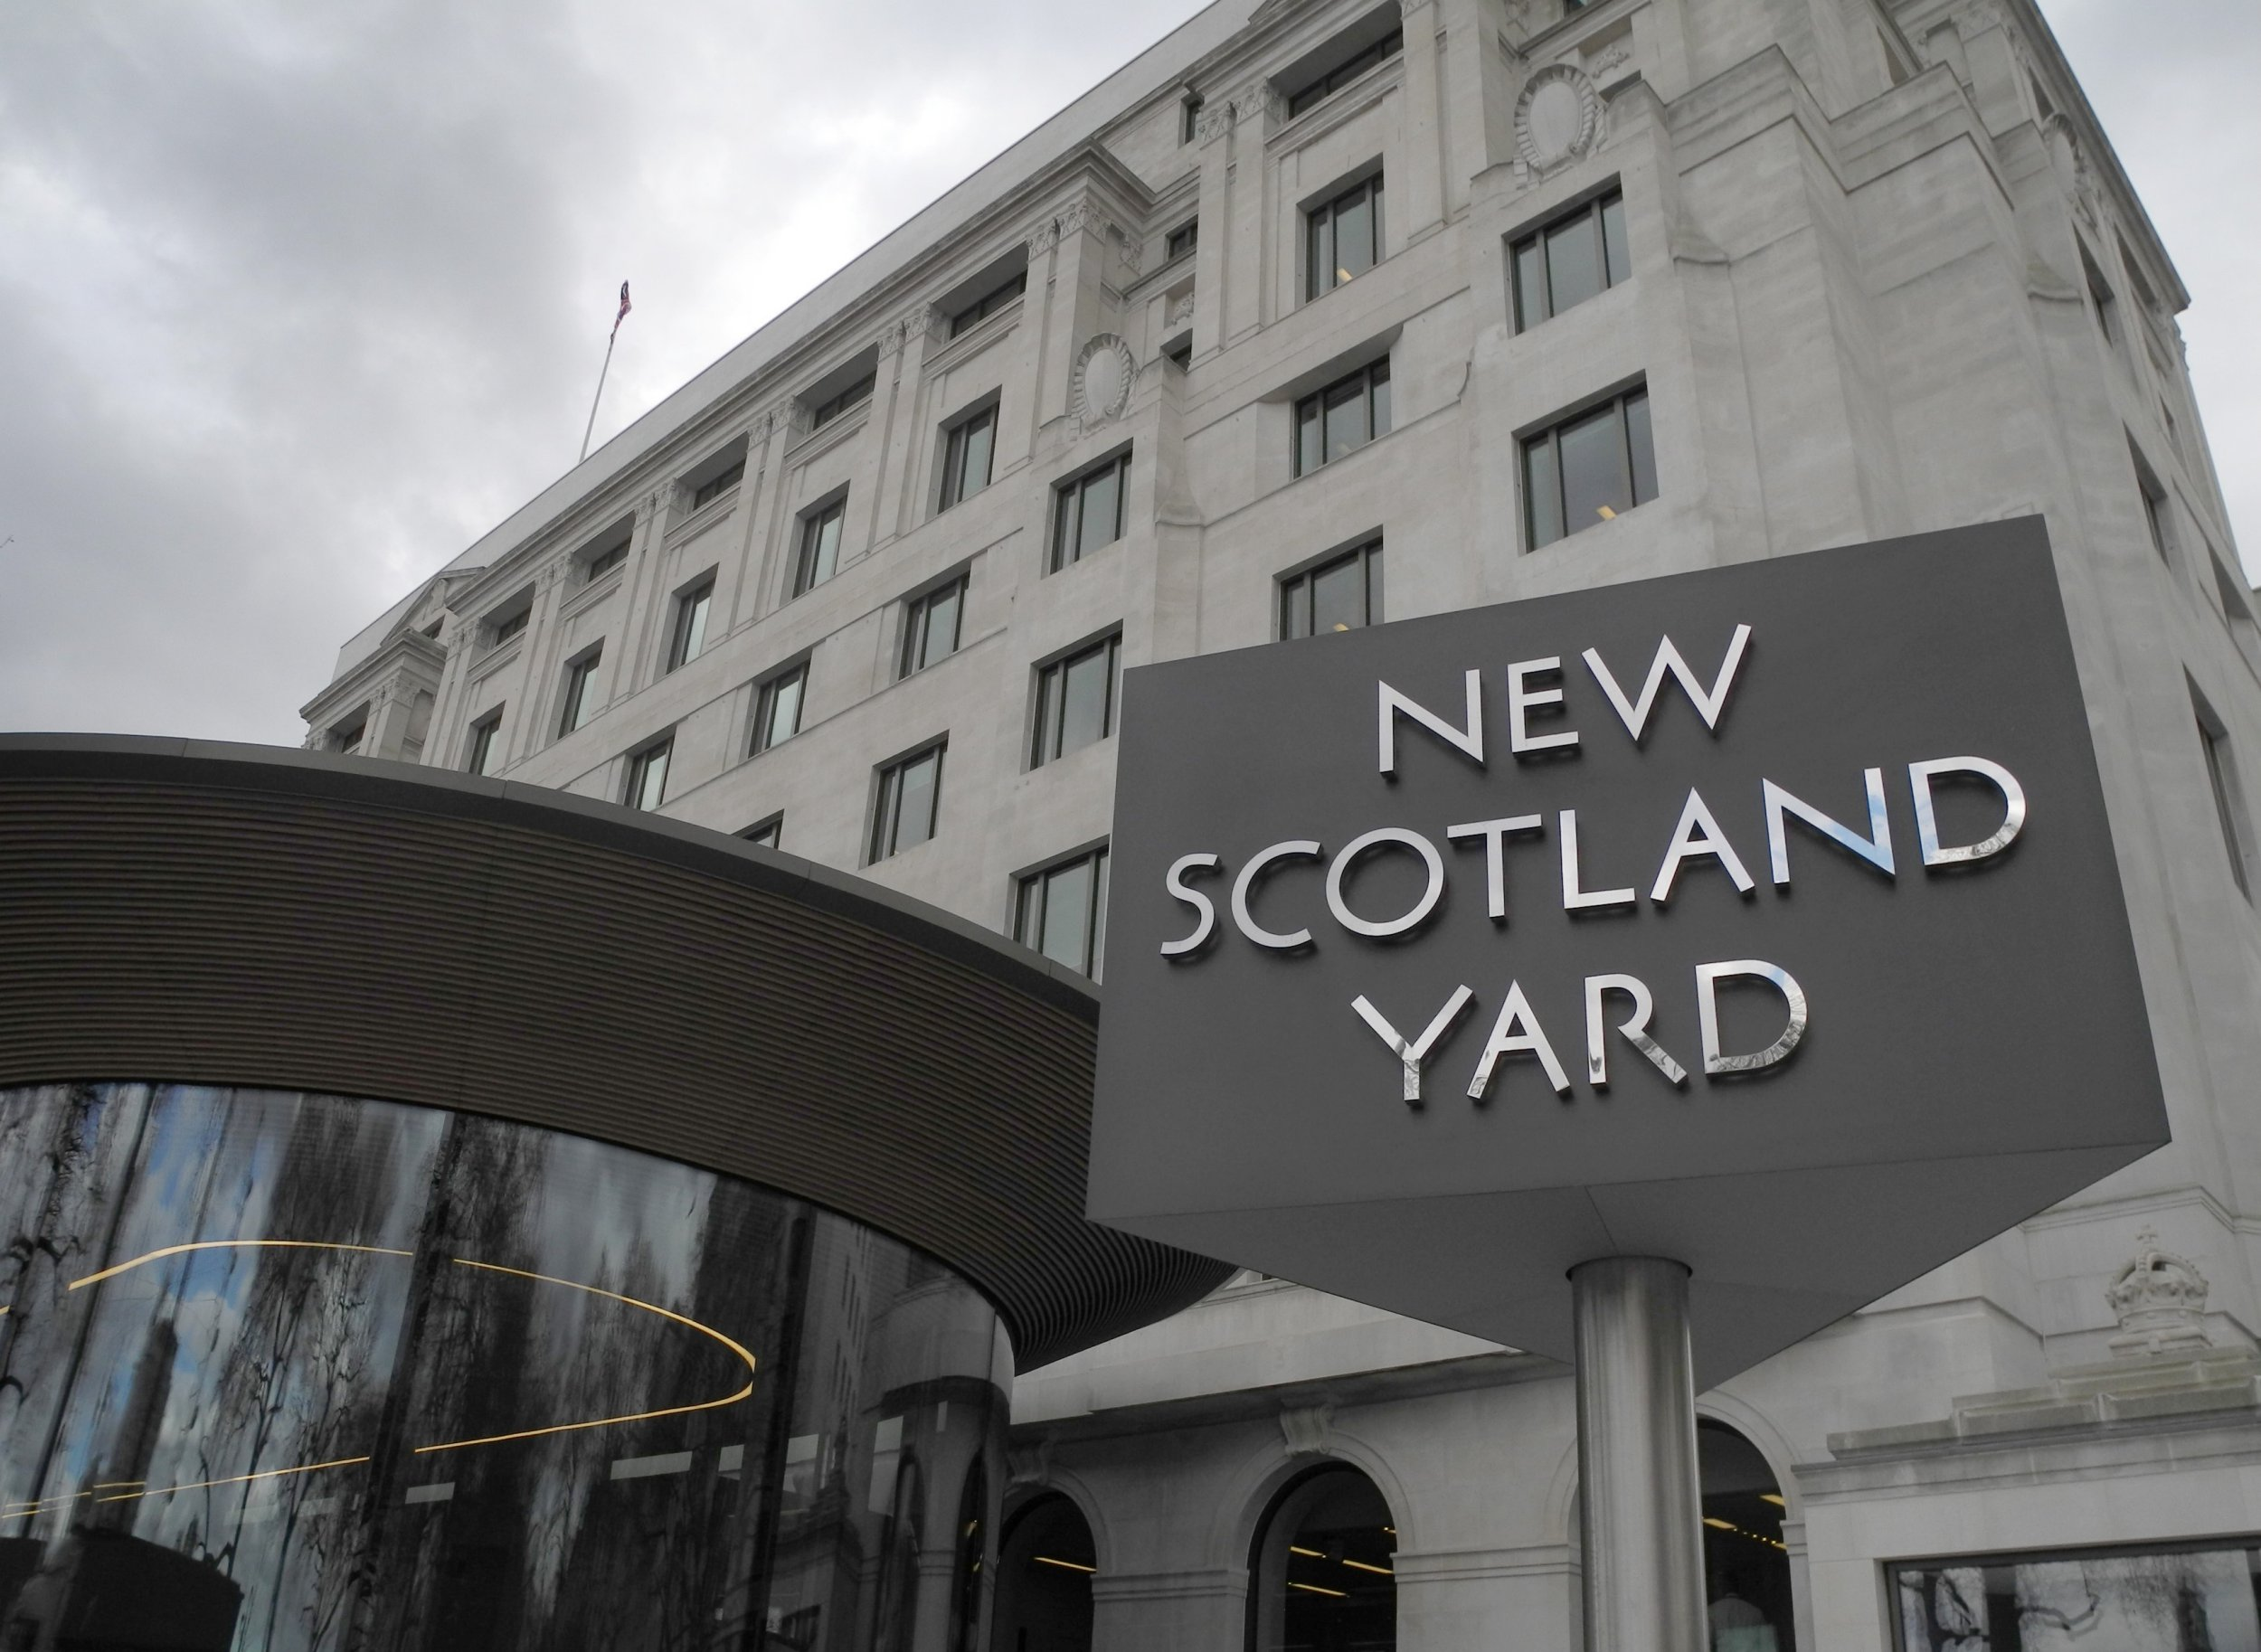 The new building of the Metropolitan Police Service (MPS) of London, also known as Scotland Yard, in London,?England, 21 March 2017. The building was scheduled to be opened by Britain's Queen Elizabeth II on 22 March 2017. Photo: Leonard Kehnscherper/dpa